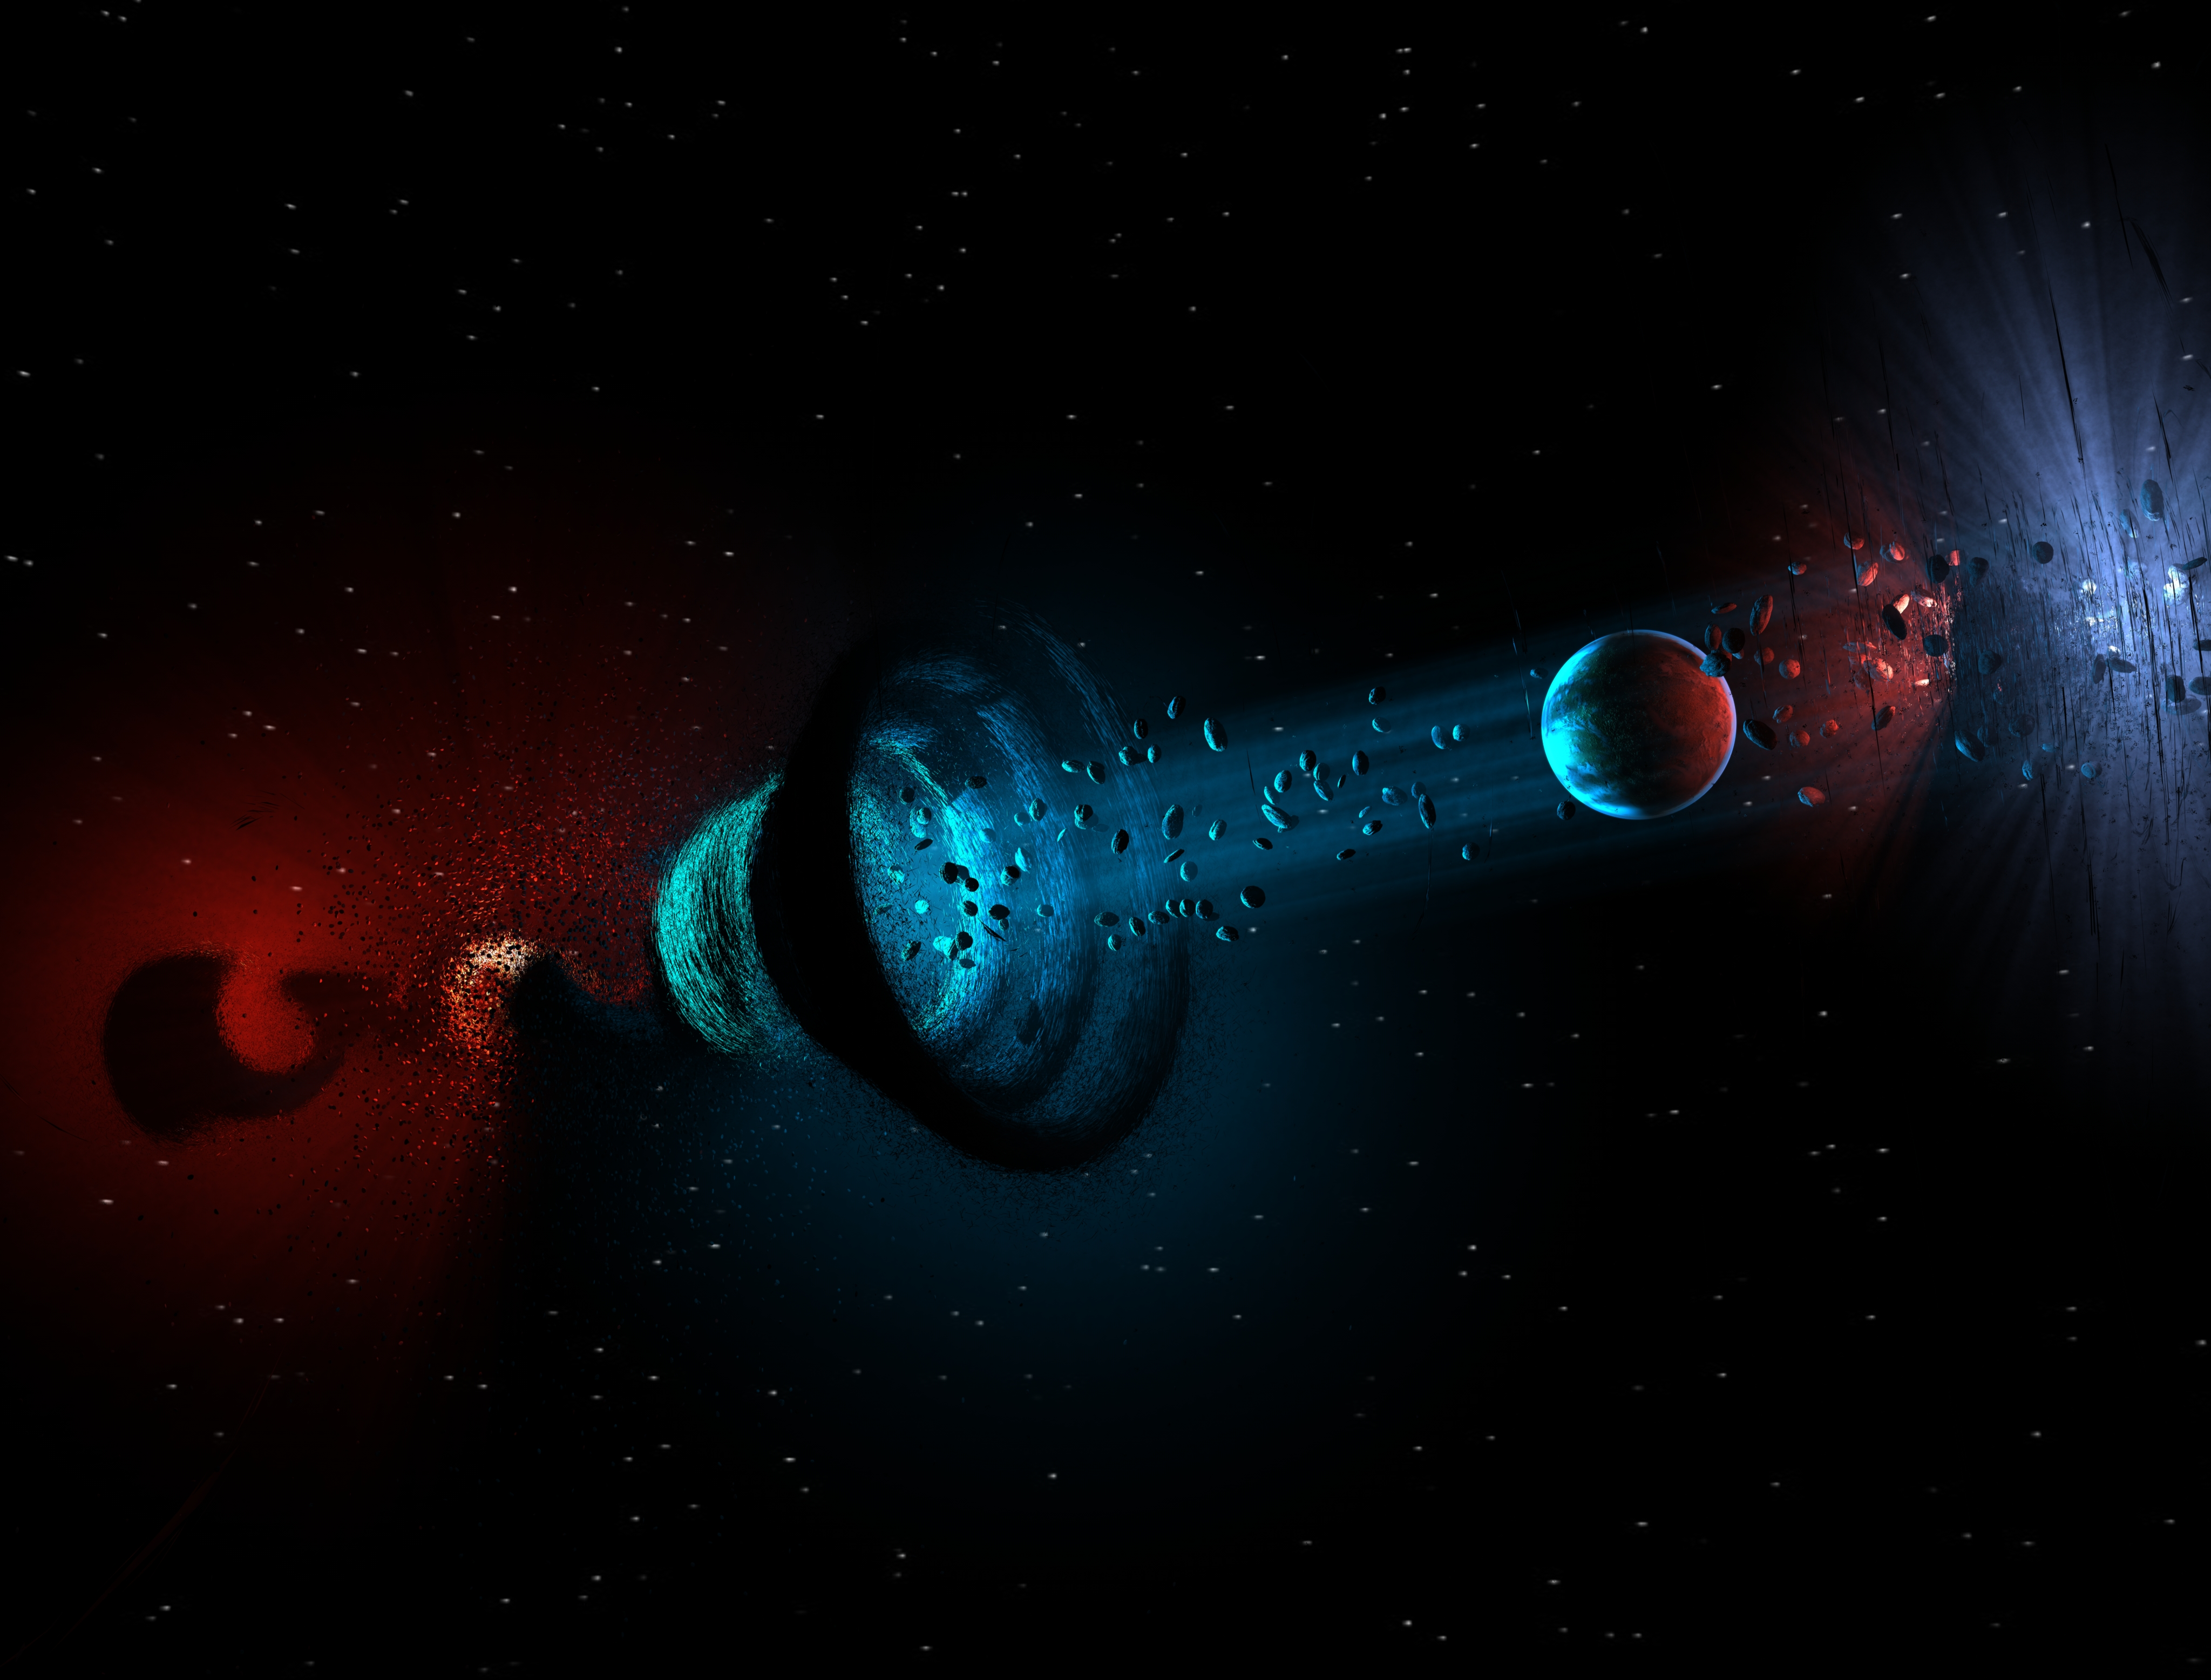 wormhole wallpaper space - photo #14